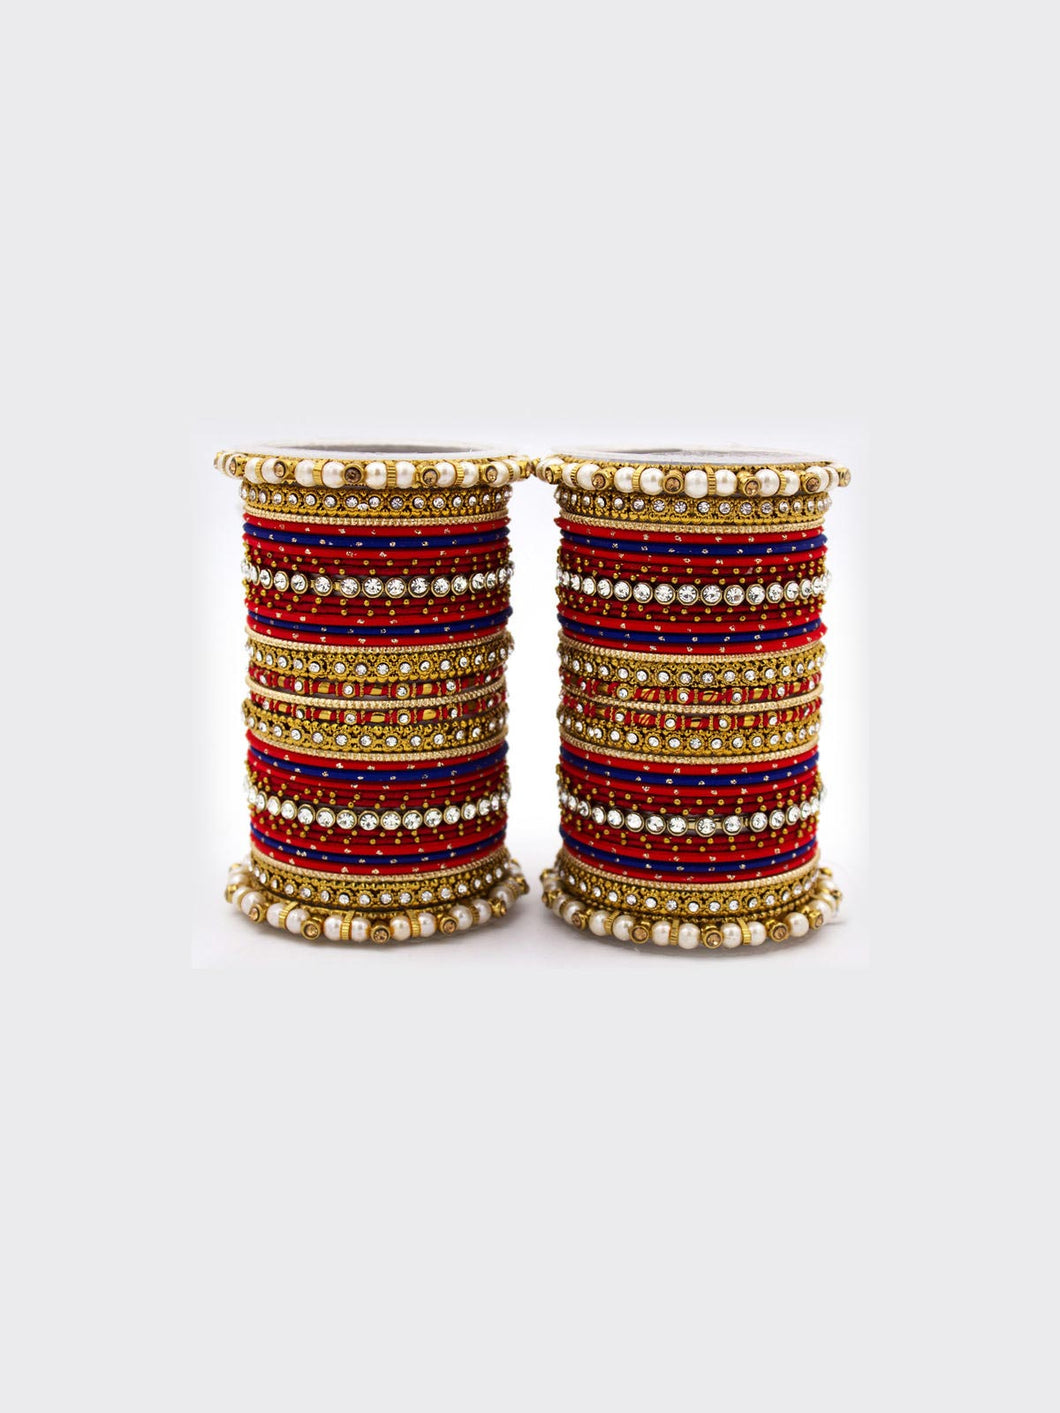 Red & Blue Bangle Set with Pearls & Stone Work